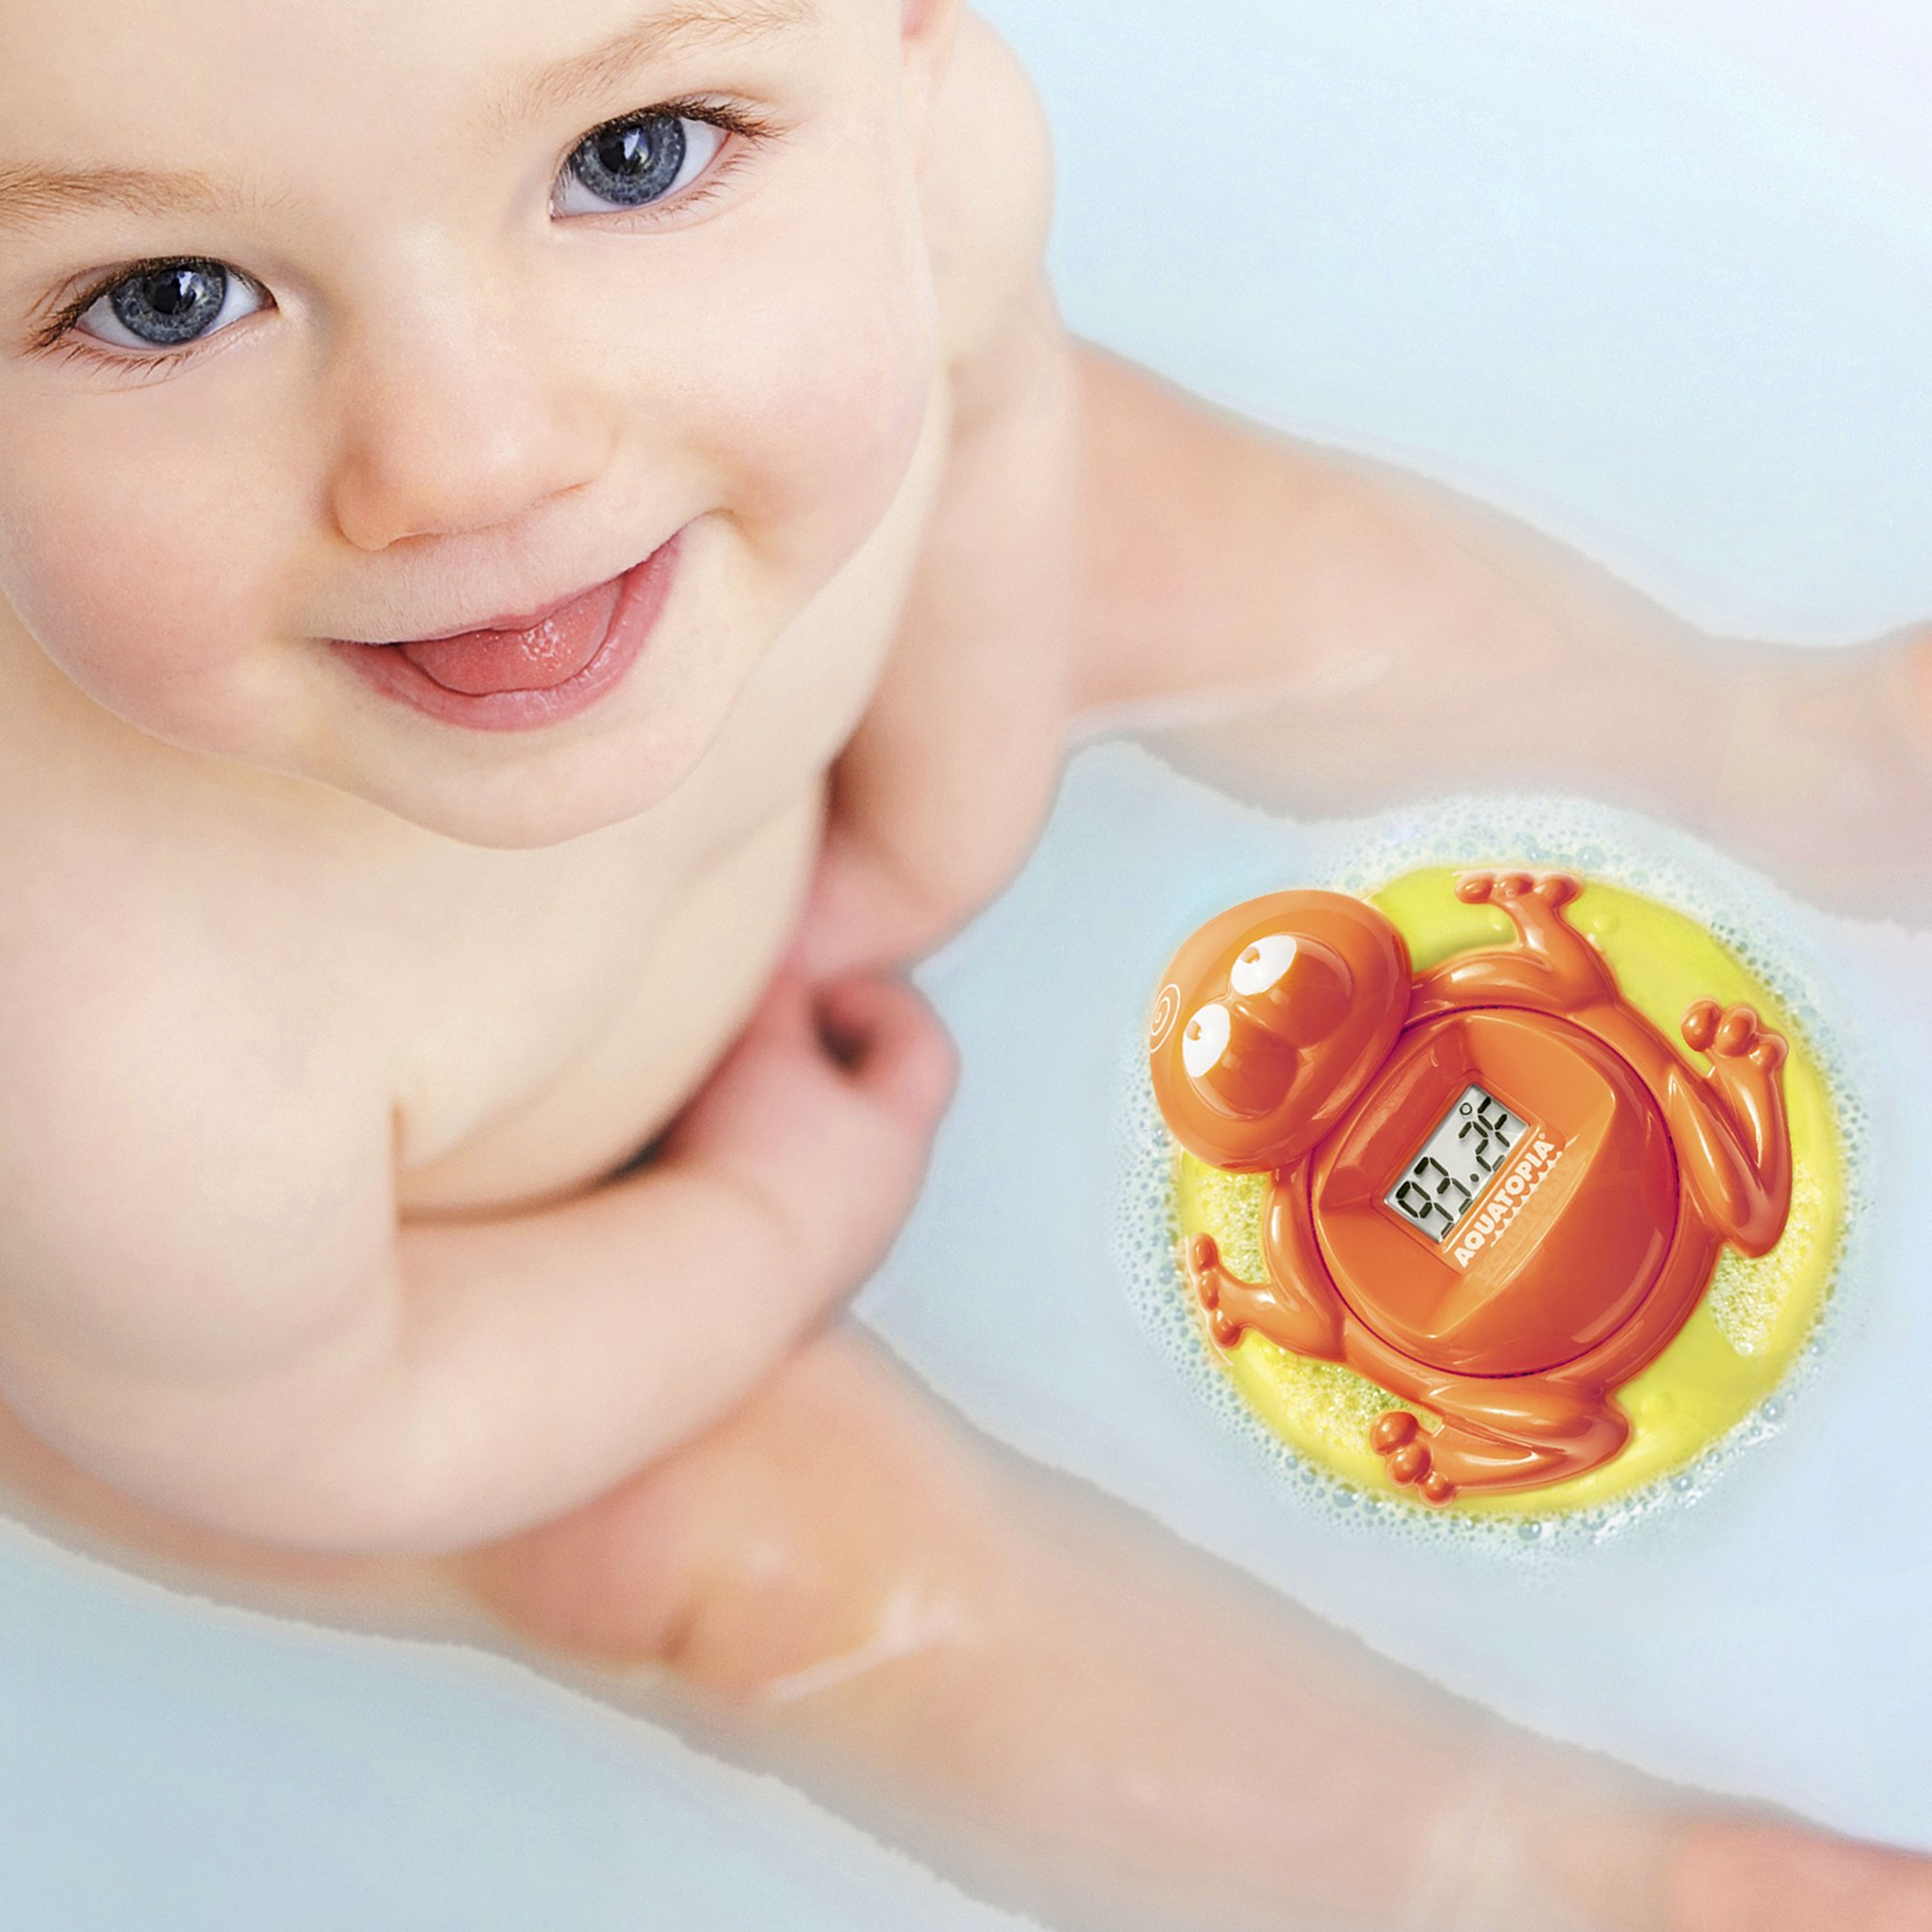 Aquatopia Safety Bath Digital Thermometer And Audible Alarm Orange Frog Walmart Com Walmart Com